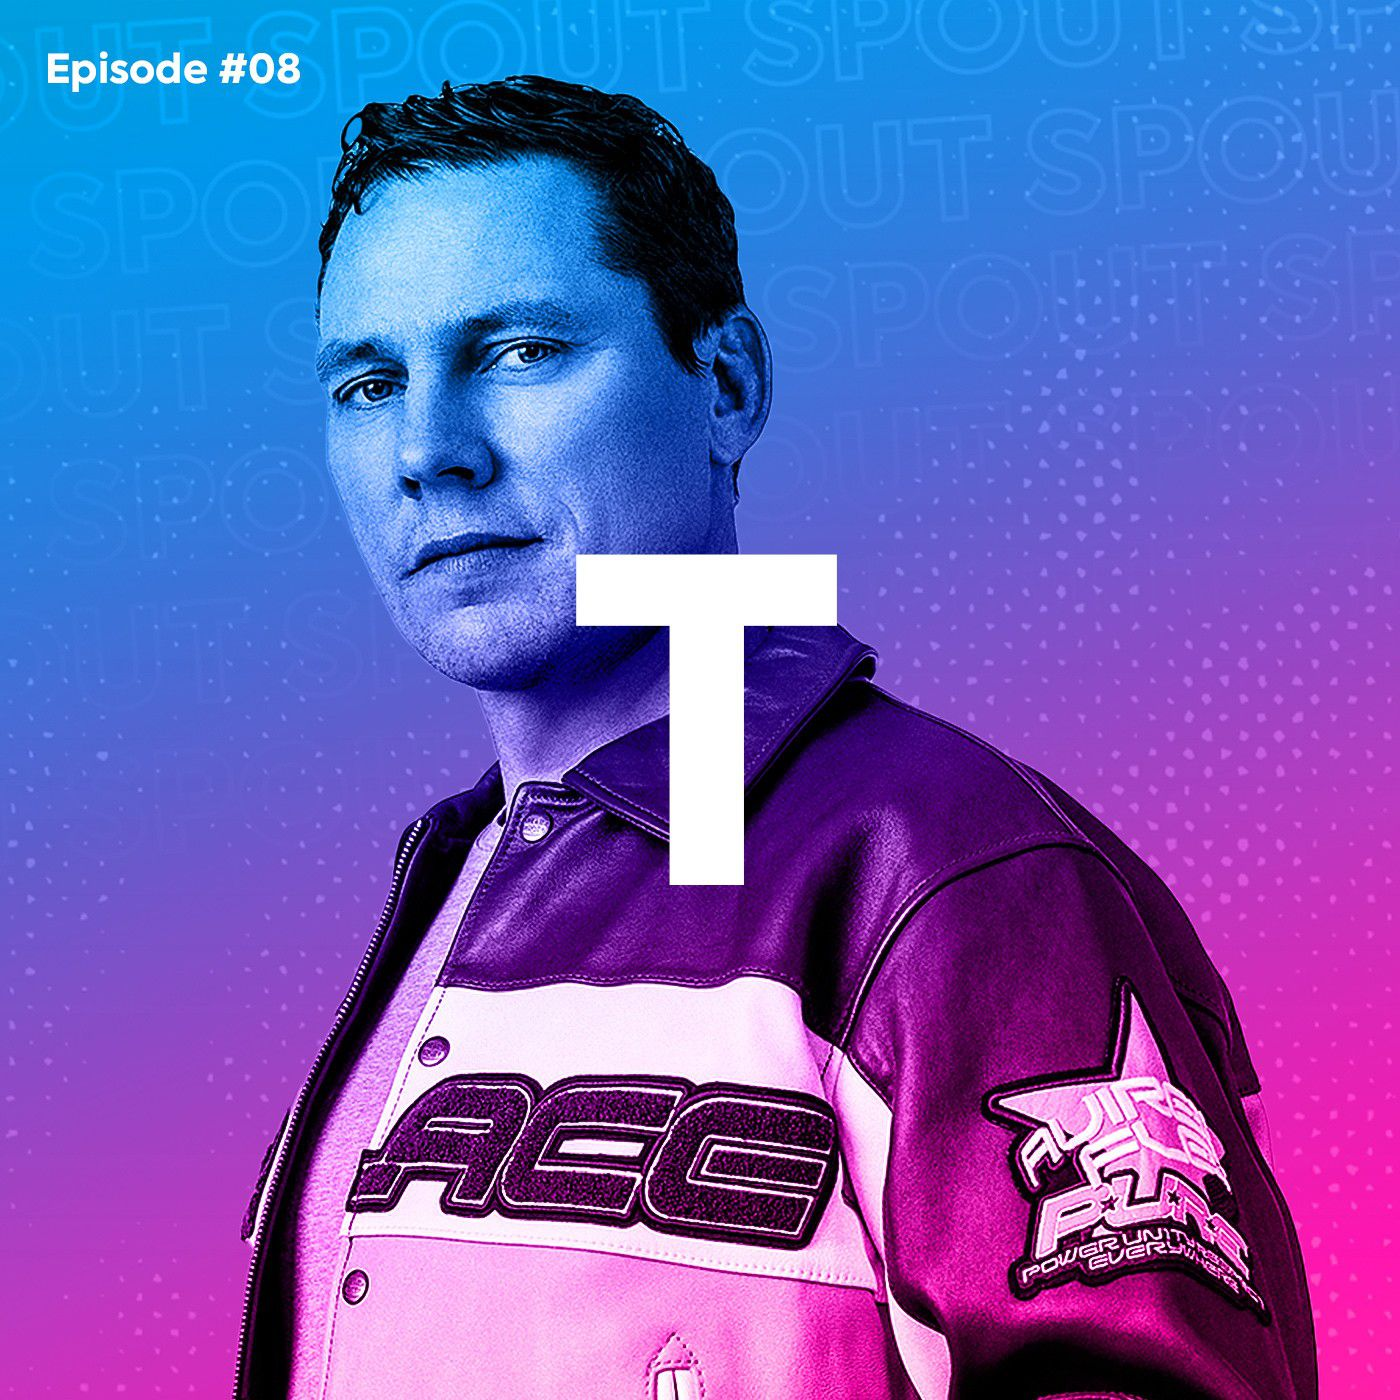 Tiësto Interview audio  Spout Podcast  may 01, 2021